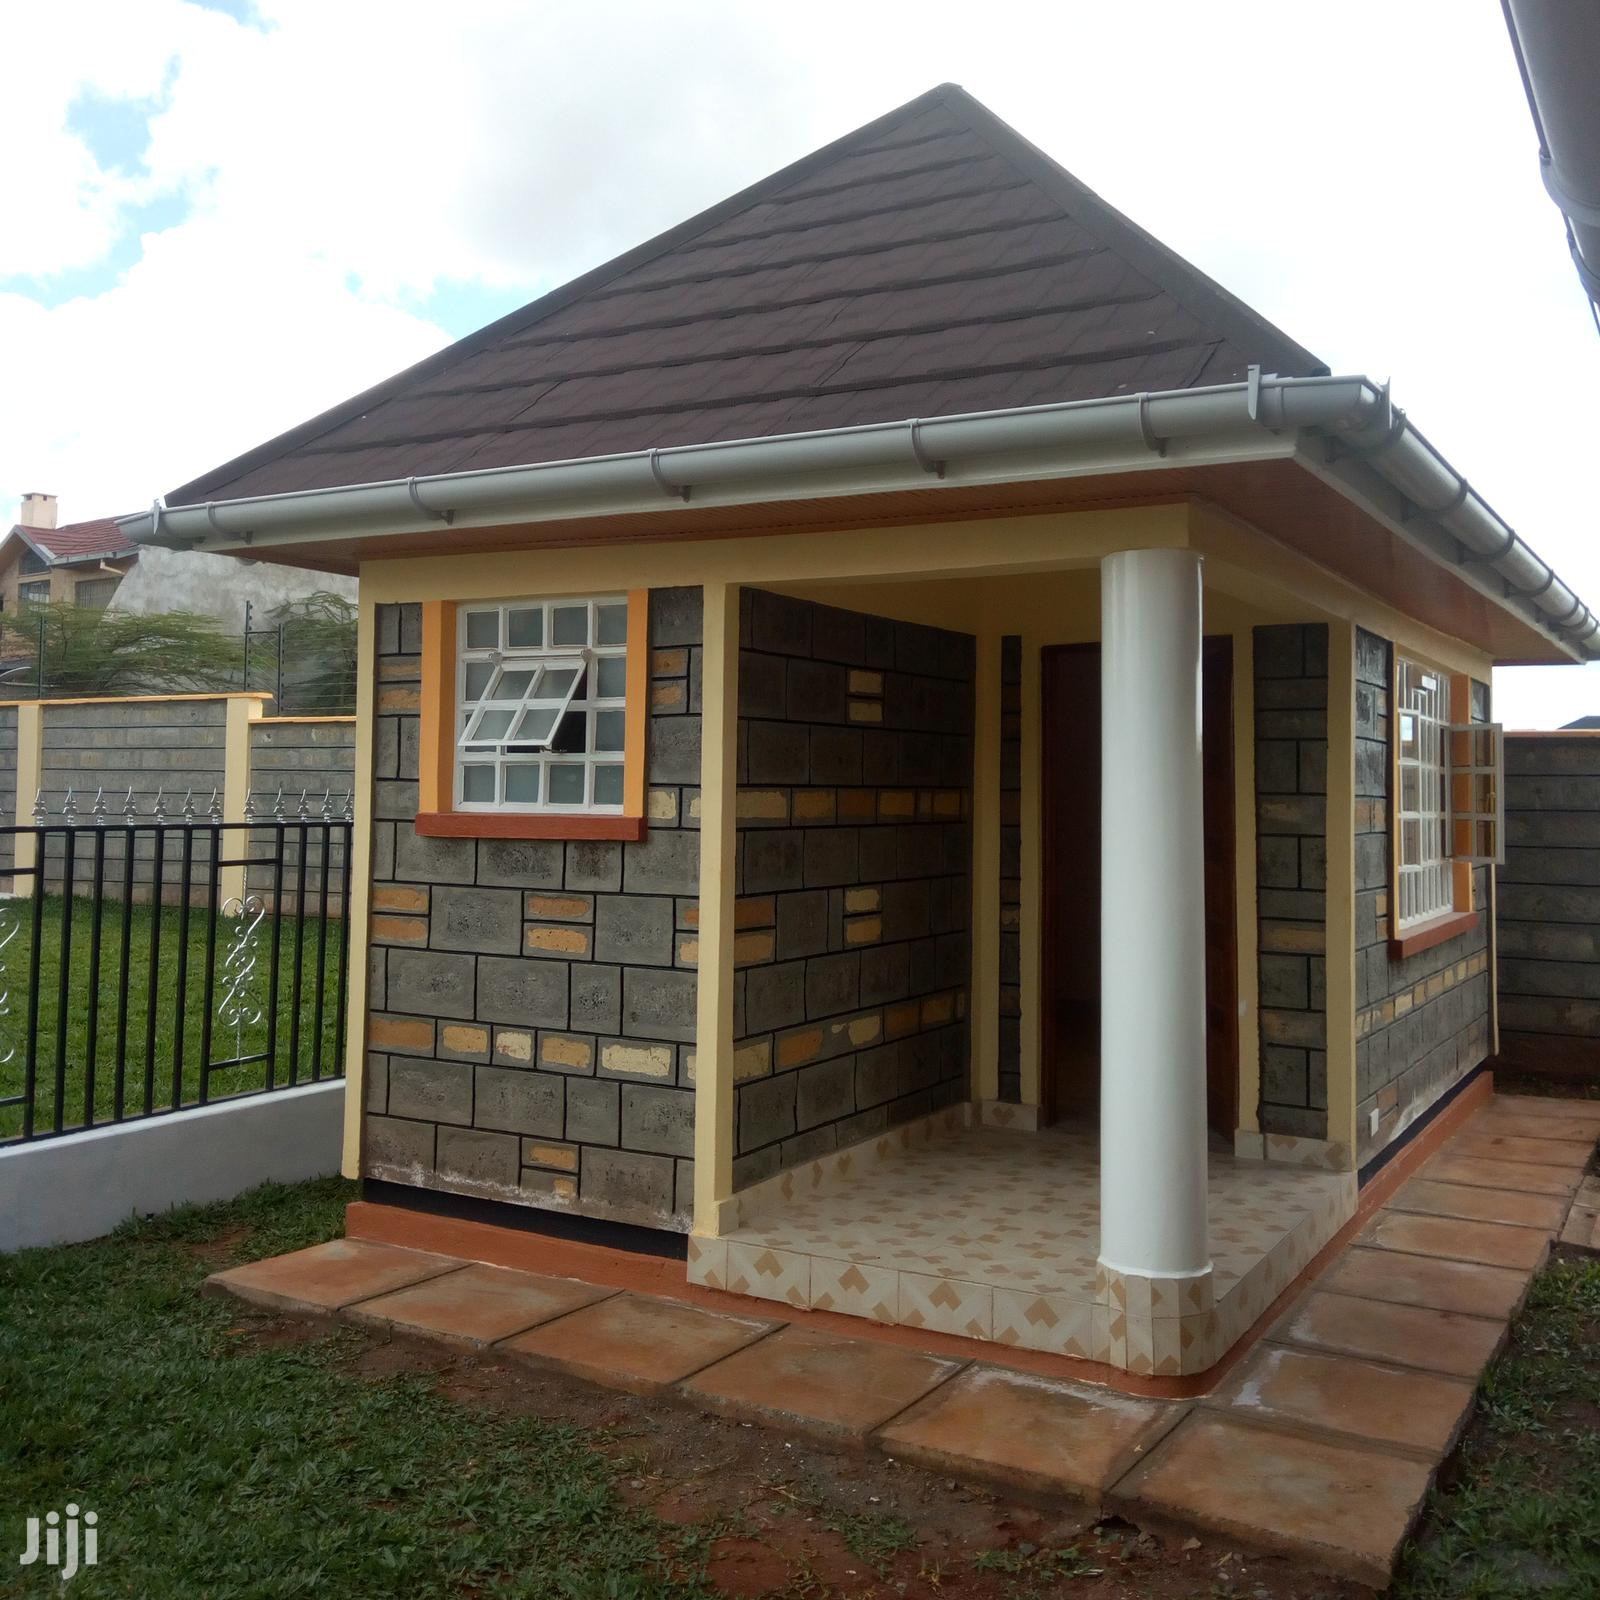 Sarah Gables: 5 Bedroom Maisonettes In Yukos, Kitengela